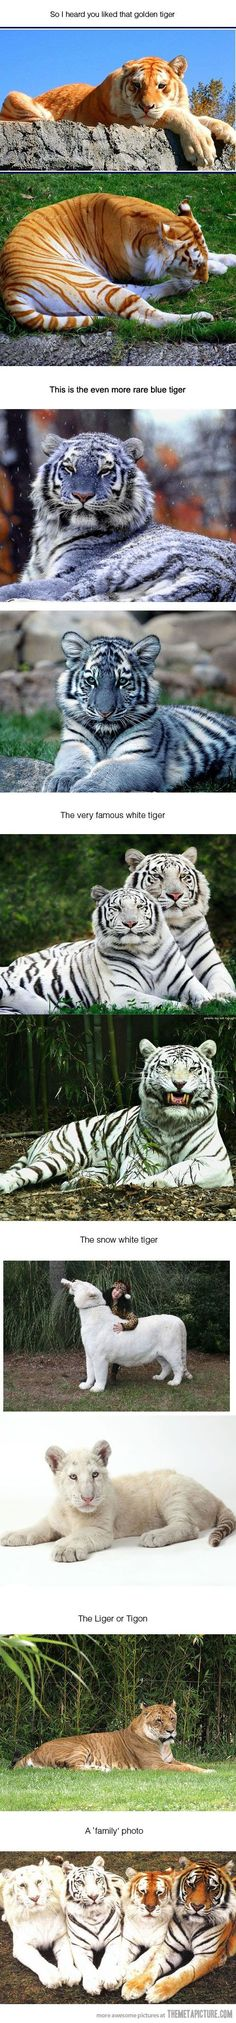 Rare tigers.  Beautiful. Love the white tiger smiling